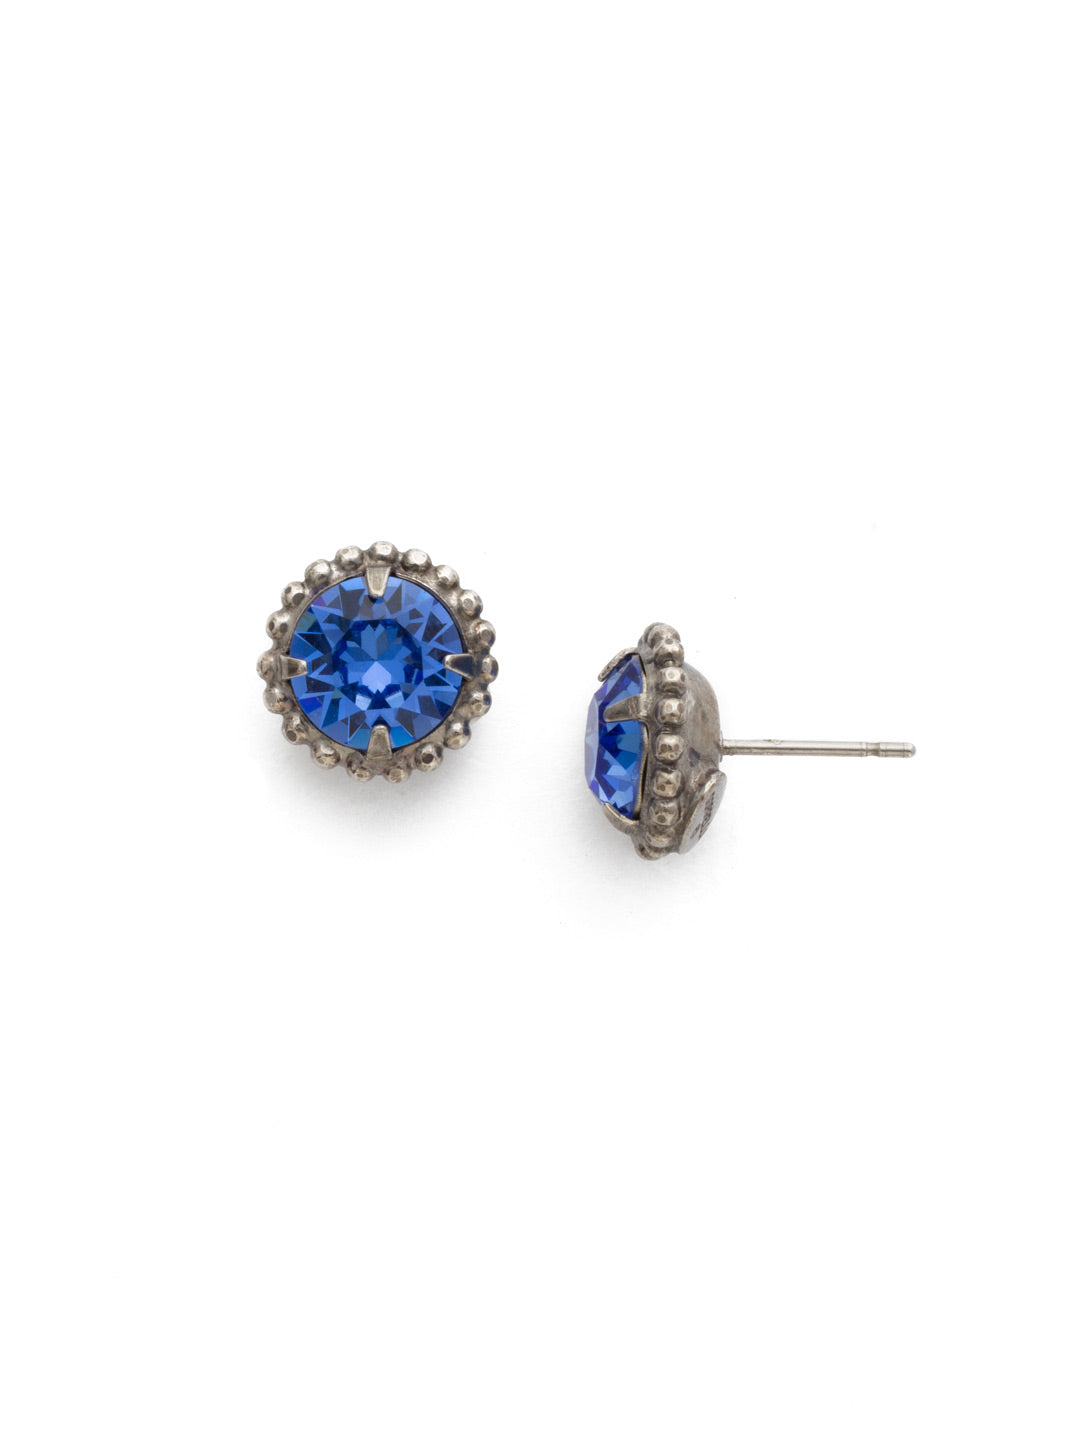 Simplicity Stud Earrings - EBY38ASSAP